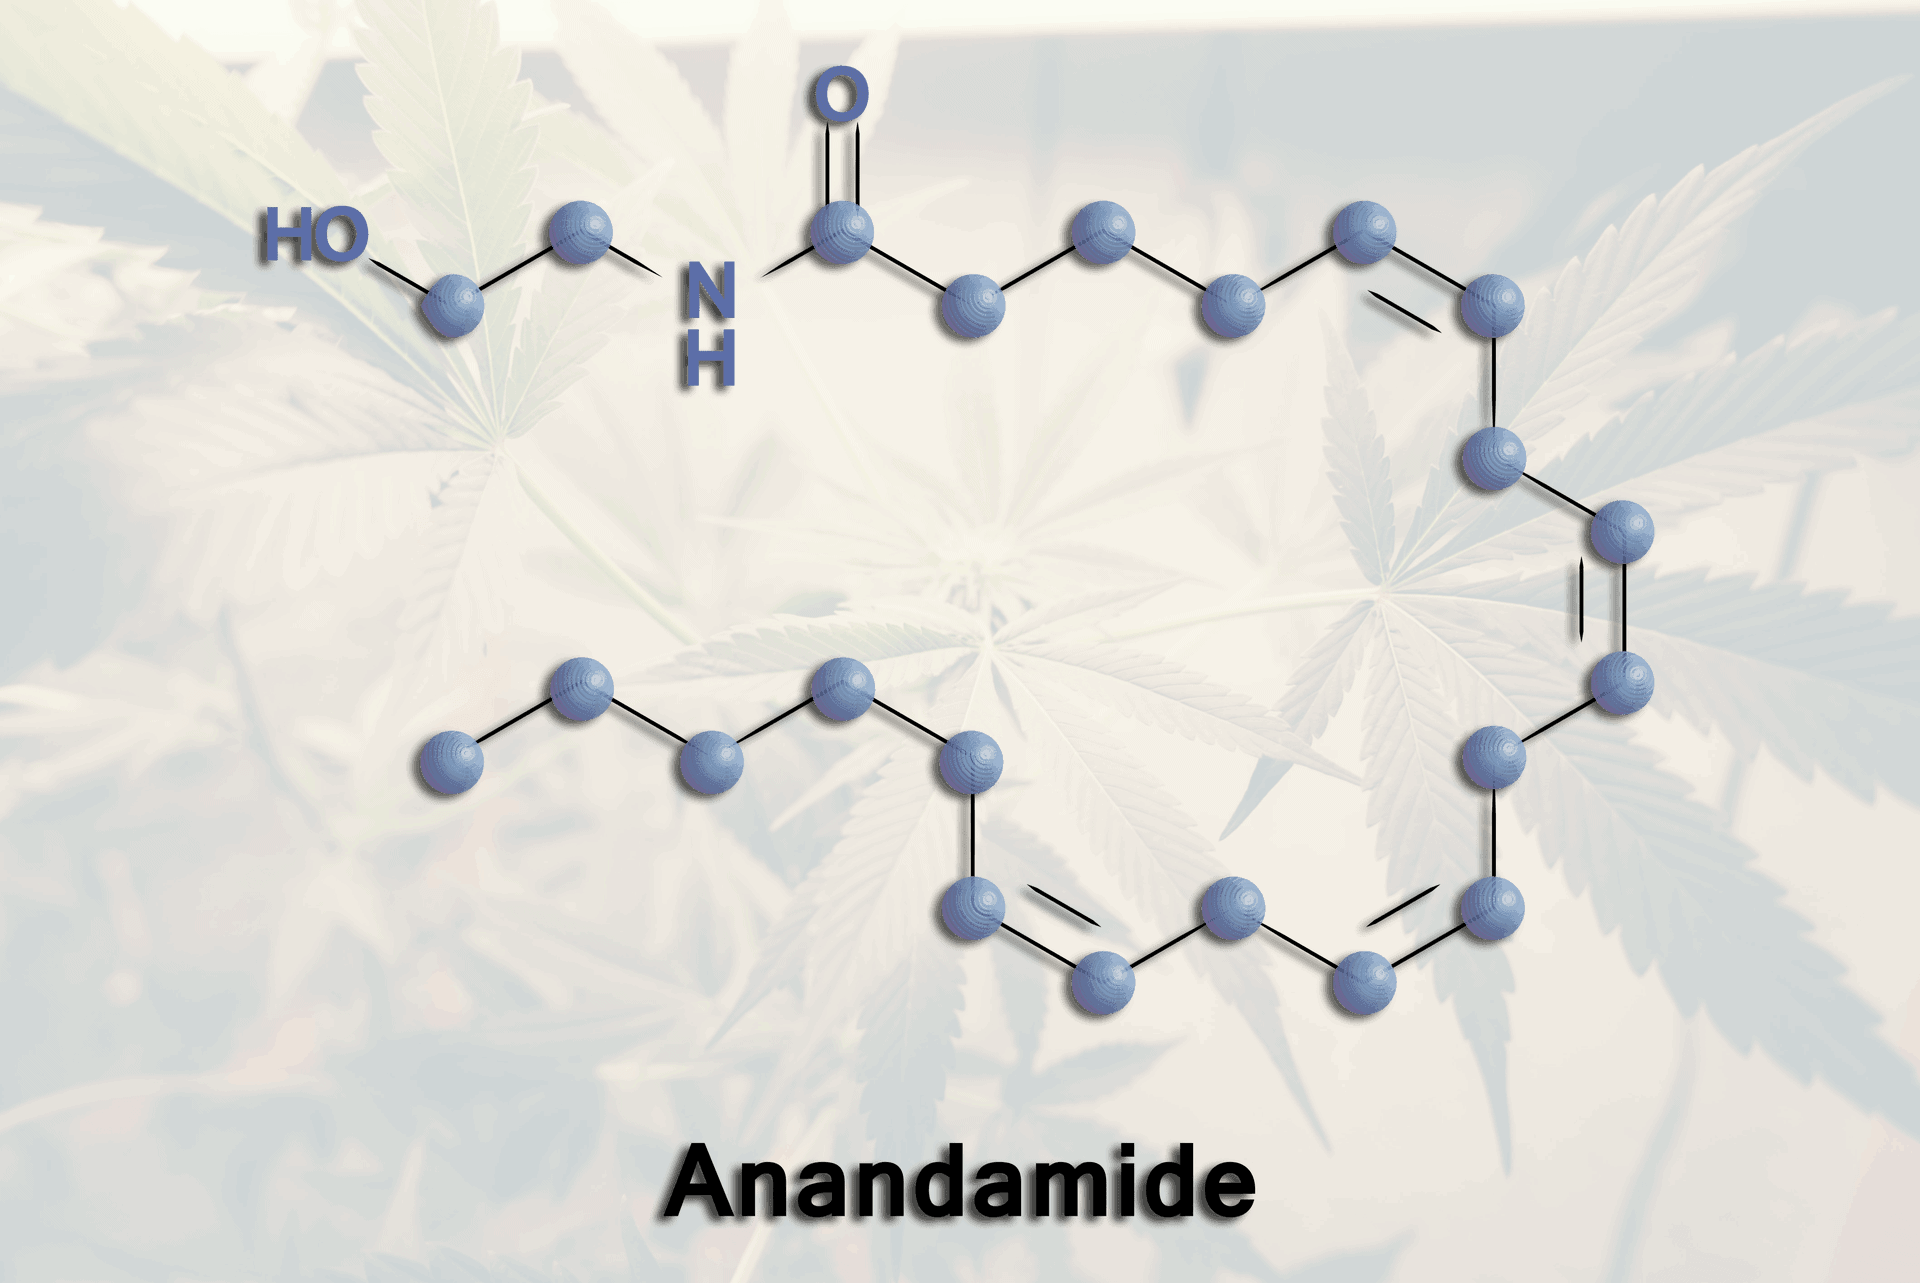 Anandamide – The Natural Cannabinoid Your Body Produces